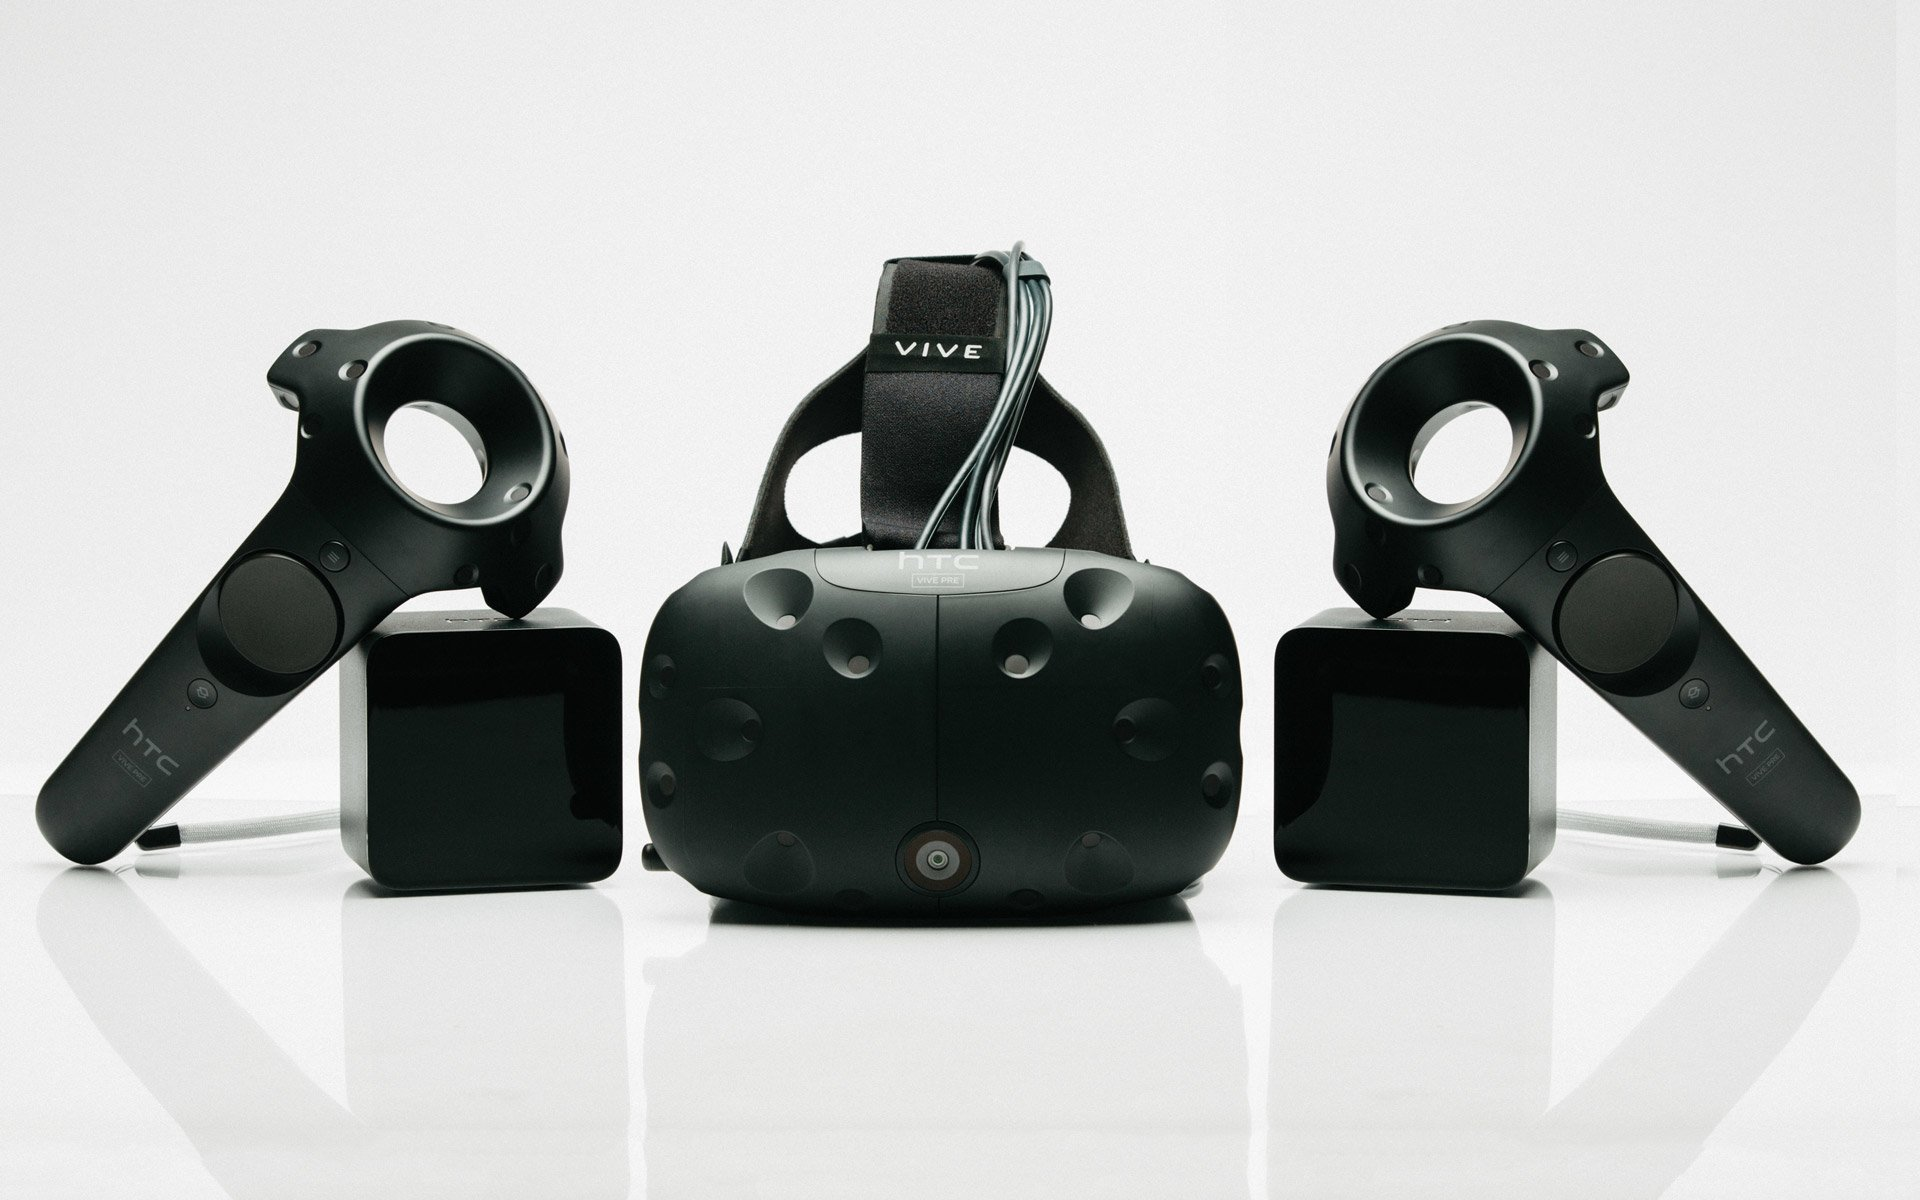 htc vive for experiencing virtual reality